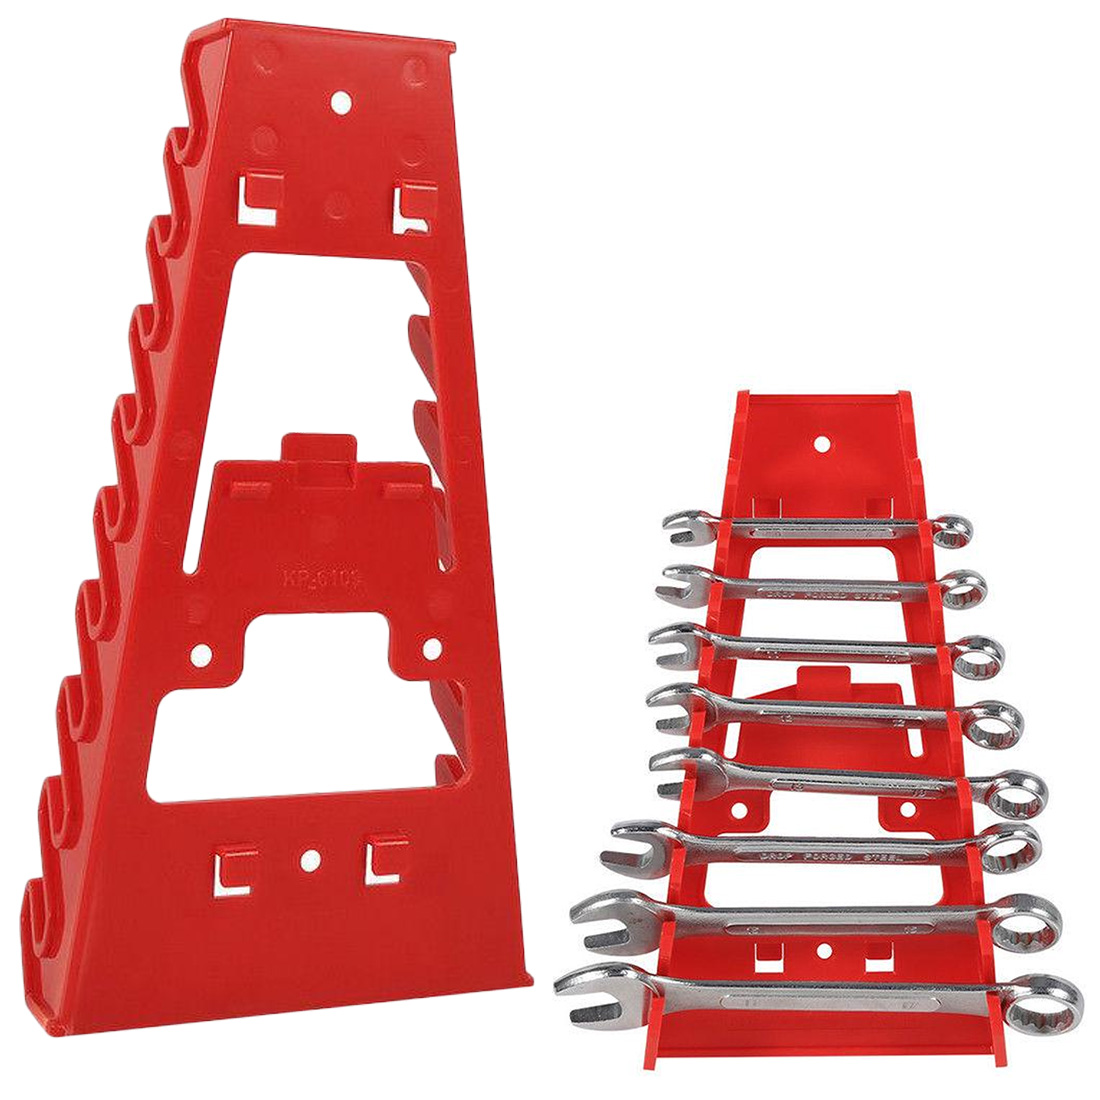 Wall Mounted Plastic Red 9 Slot Wrenches Rack Standard Organizer Holder Tools Storage Rack Rail Tray